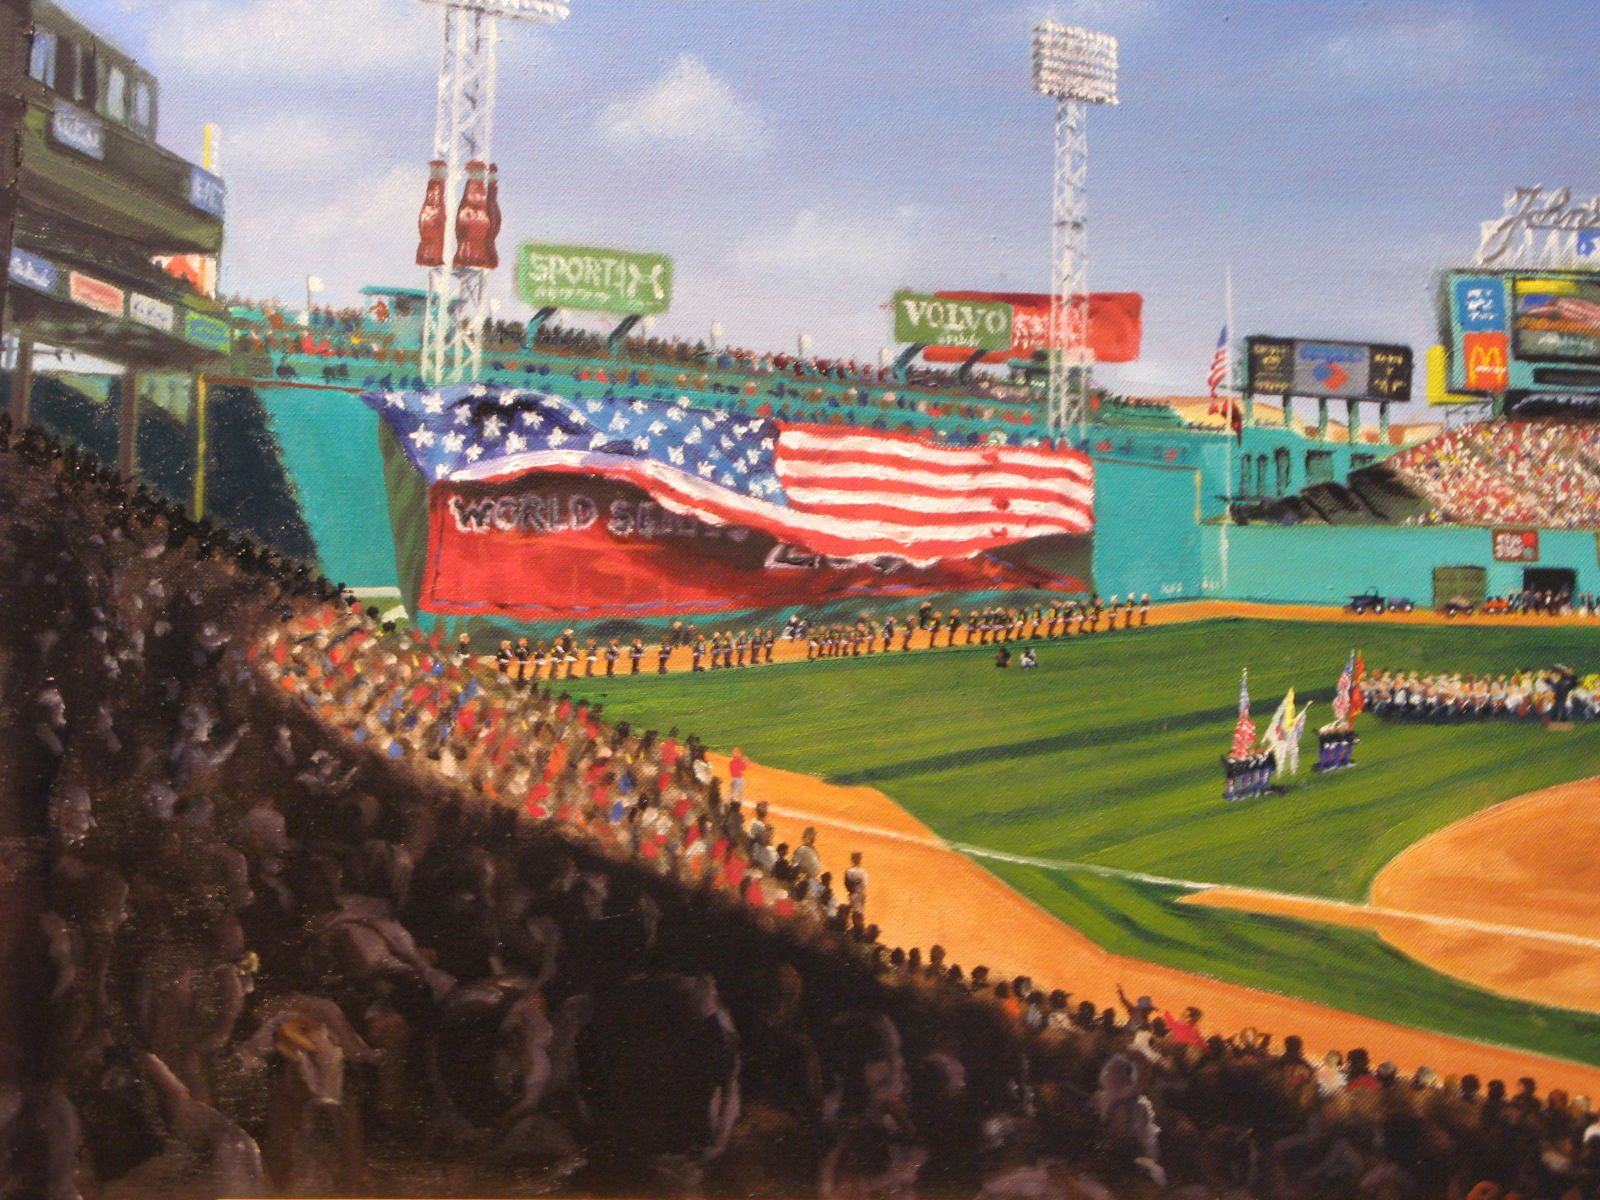 Opening Day - 2005 - Fenway Park